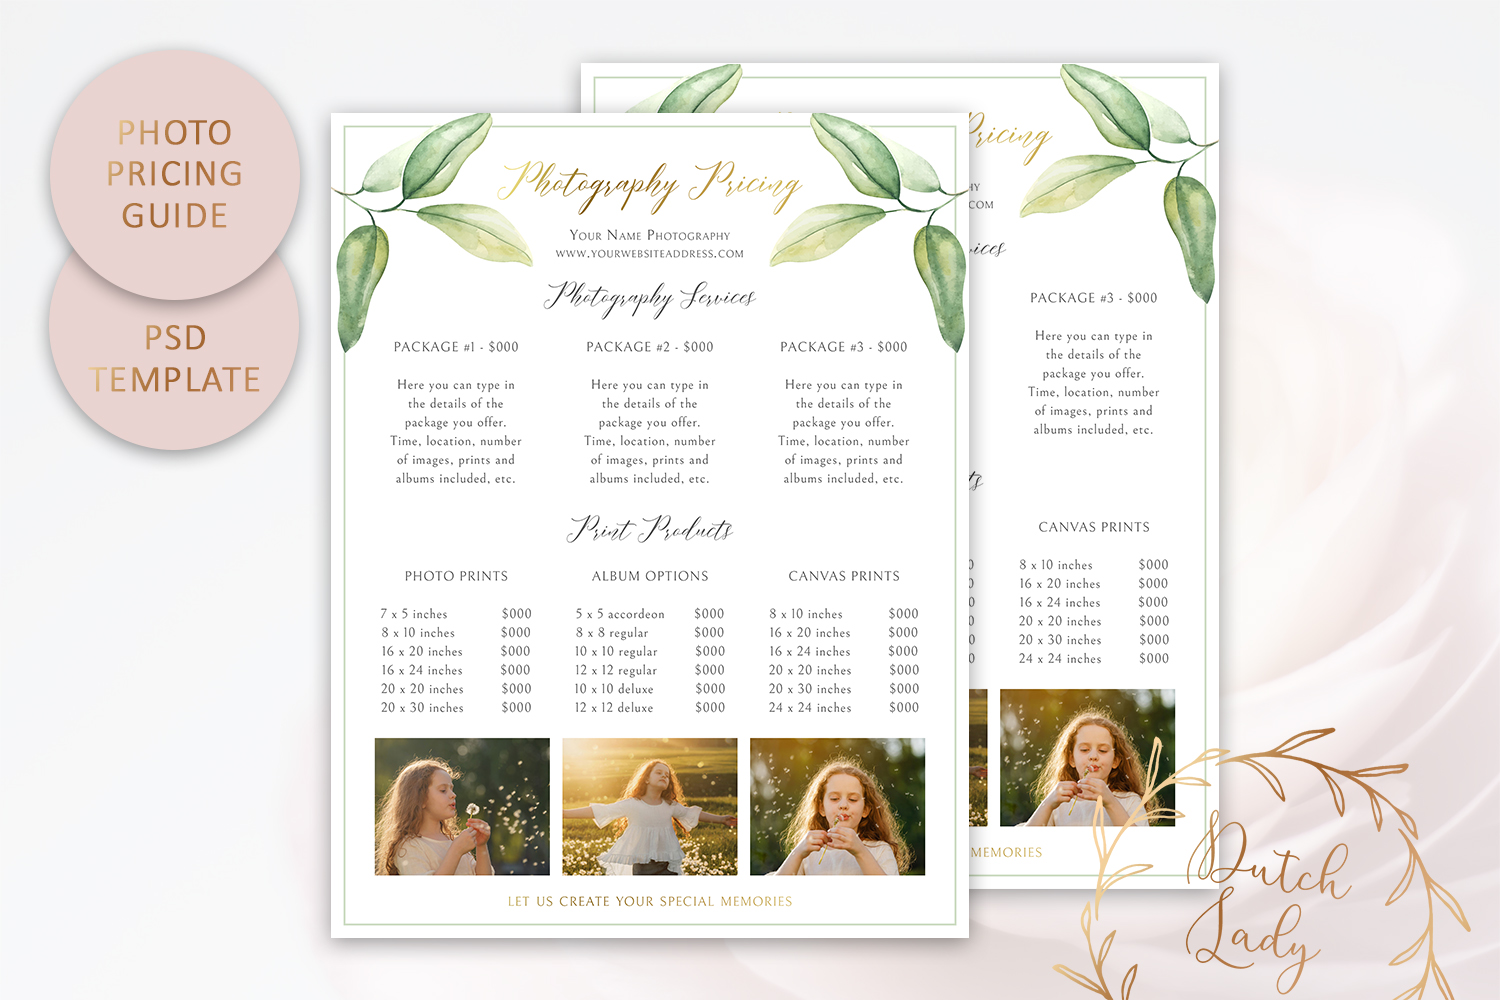 PSD Photography Pricing Guide Template Design #10 example image 1